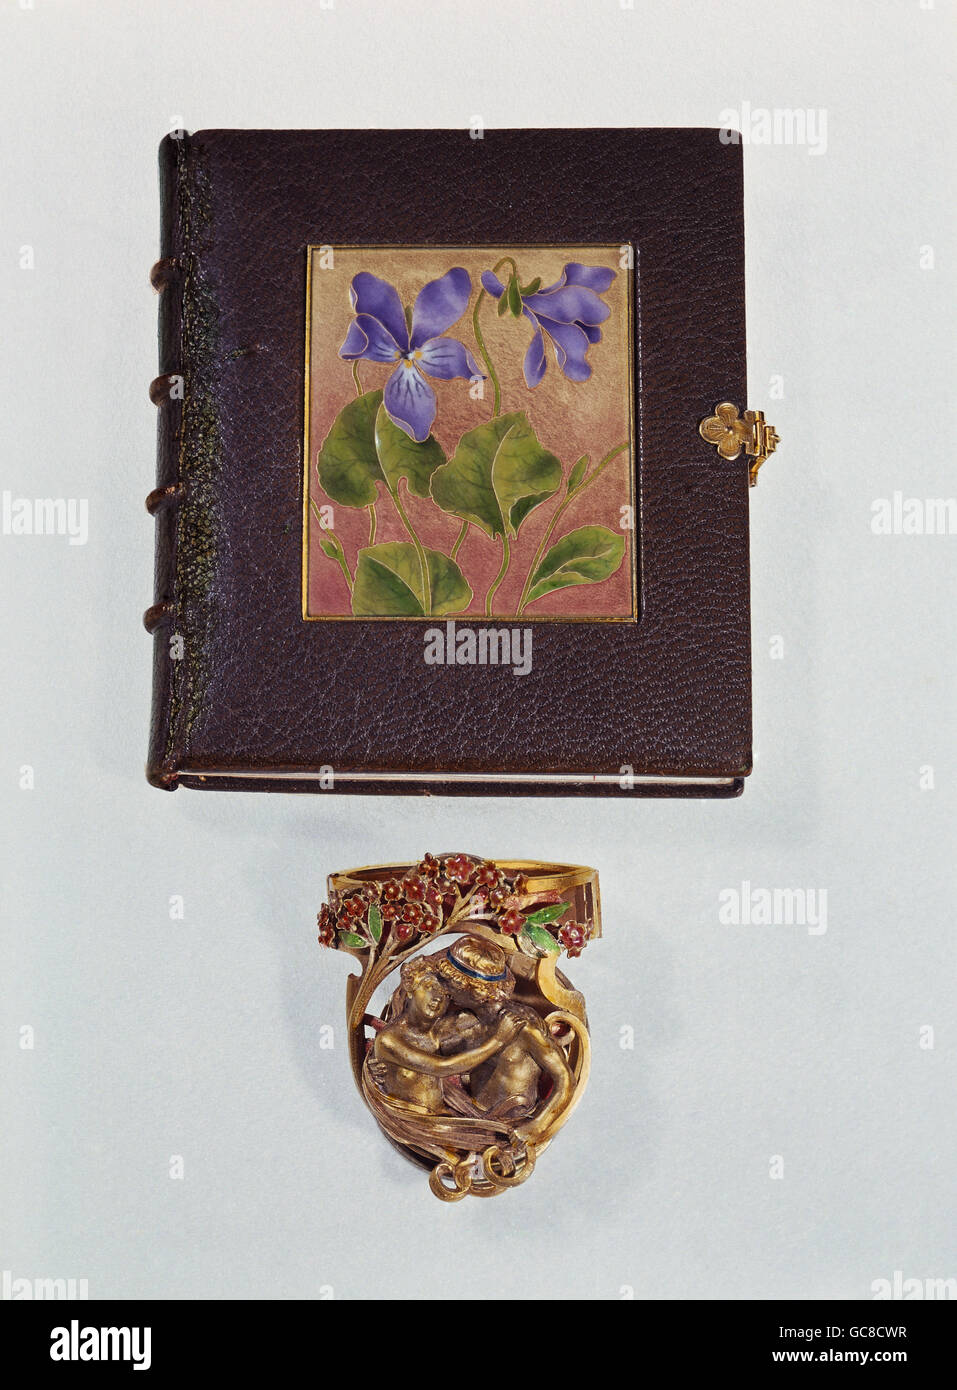 jewellery, above: small book of hours, by E. Tourette, leather, enamel, gold, 7.5 cm x 6.5 cm, Paris, France, 1900 - Stock Image